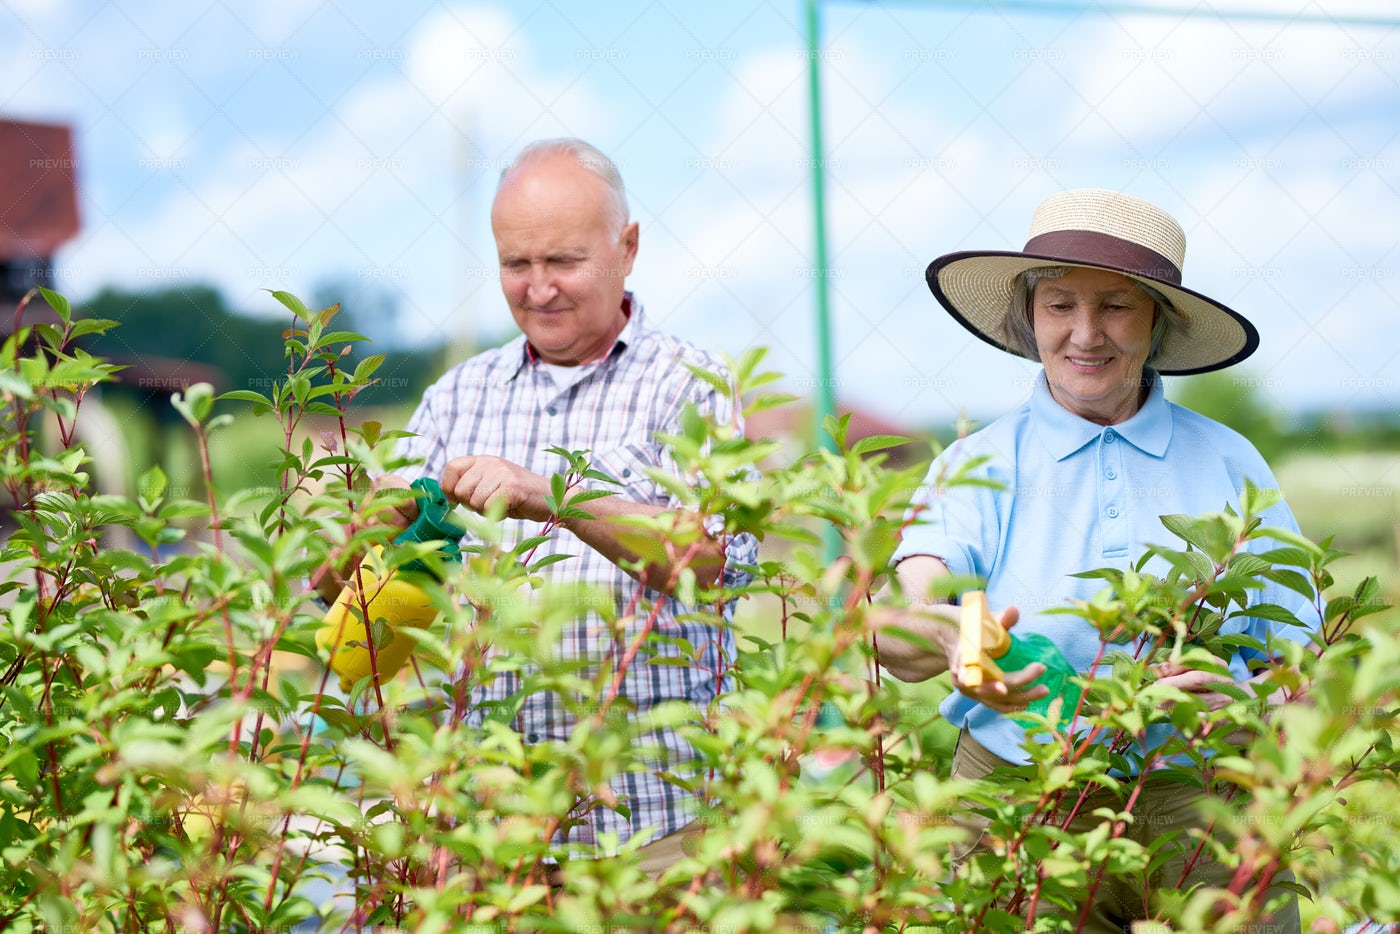 Couple Of Senior Farmers Working In...: Stock Photos